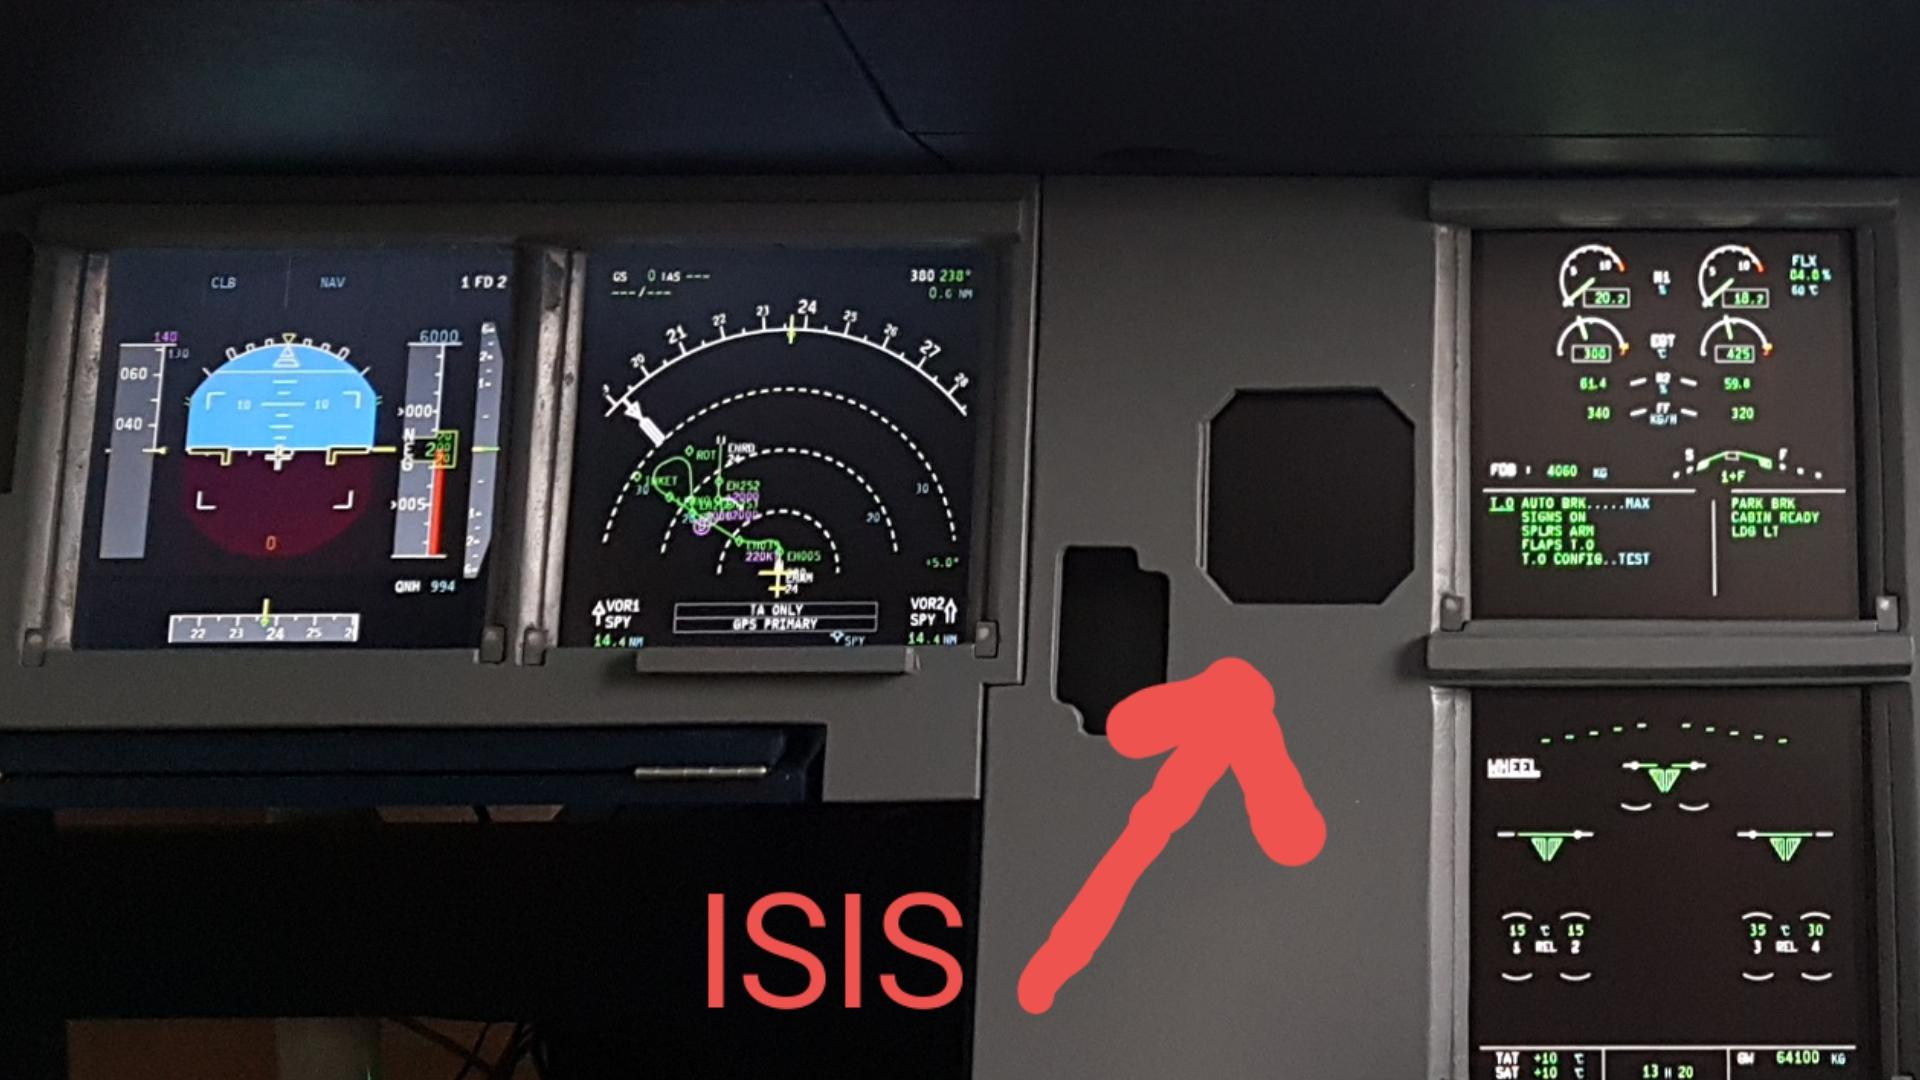 homecockpit] A320X Undocked ISIS display would be nice